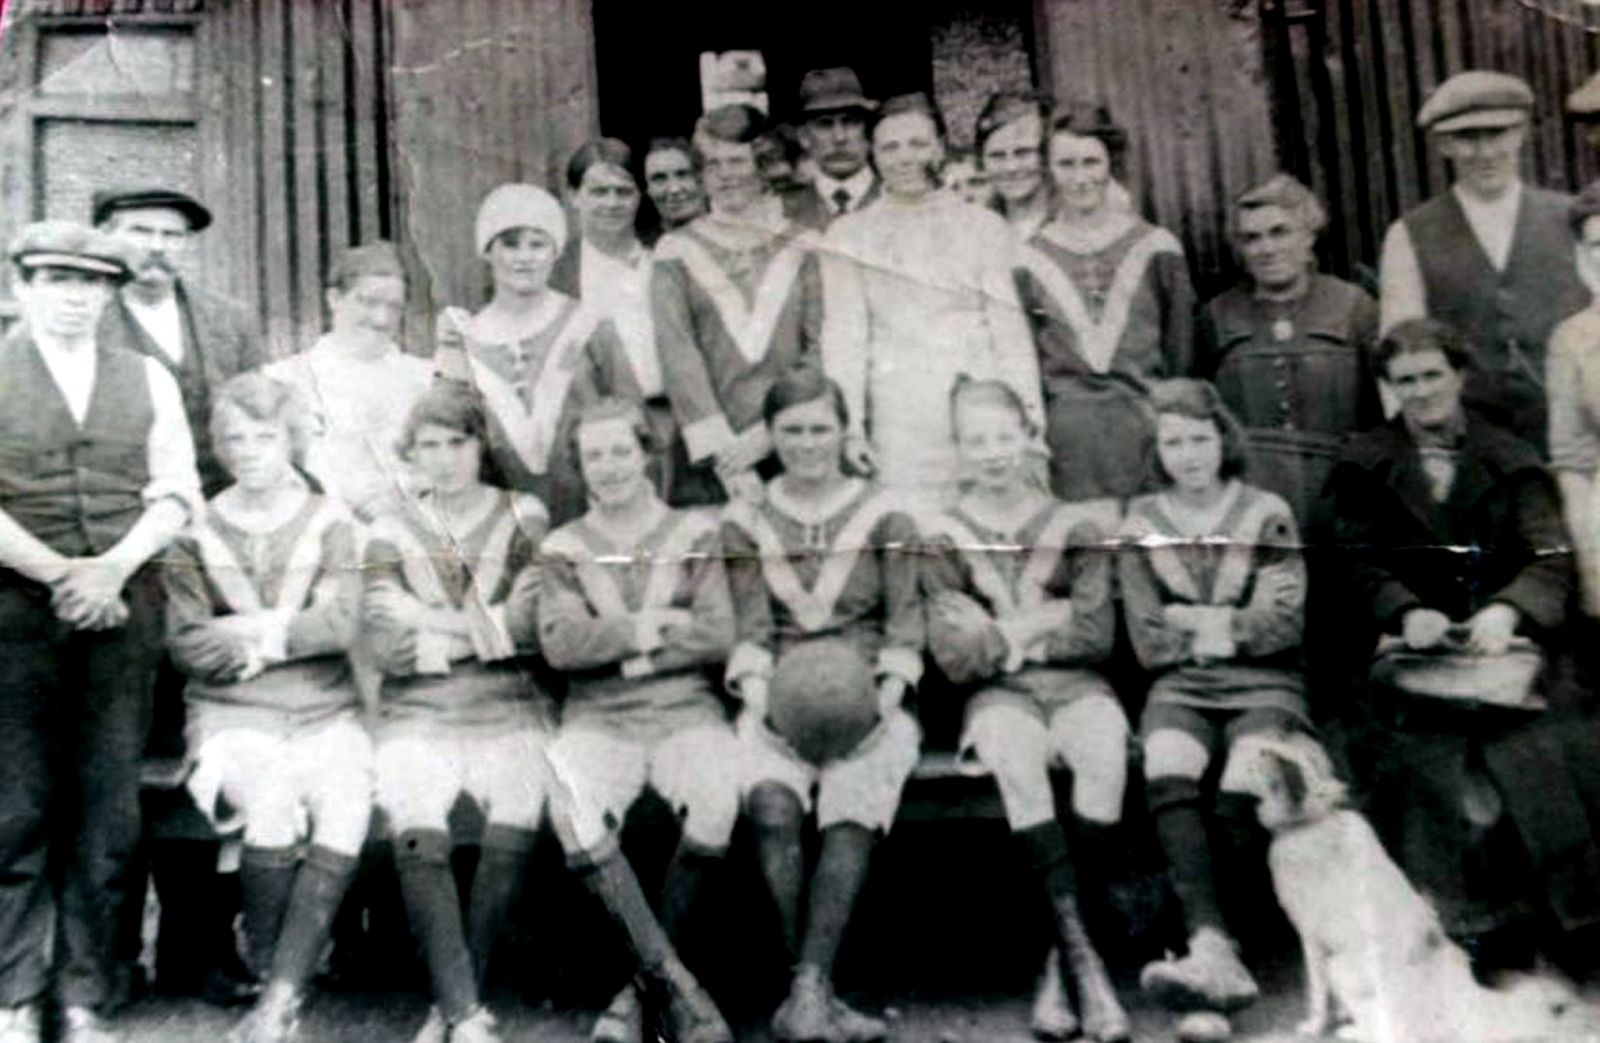 Netherton Colliery Ladies football team 1920s